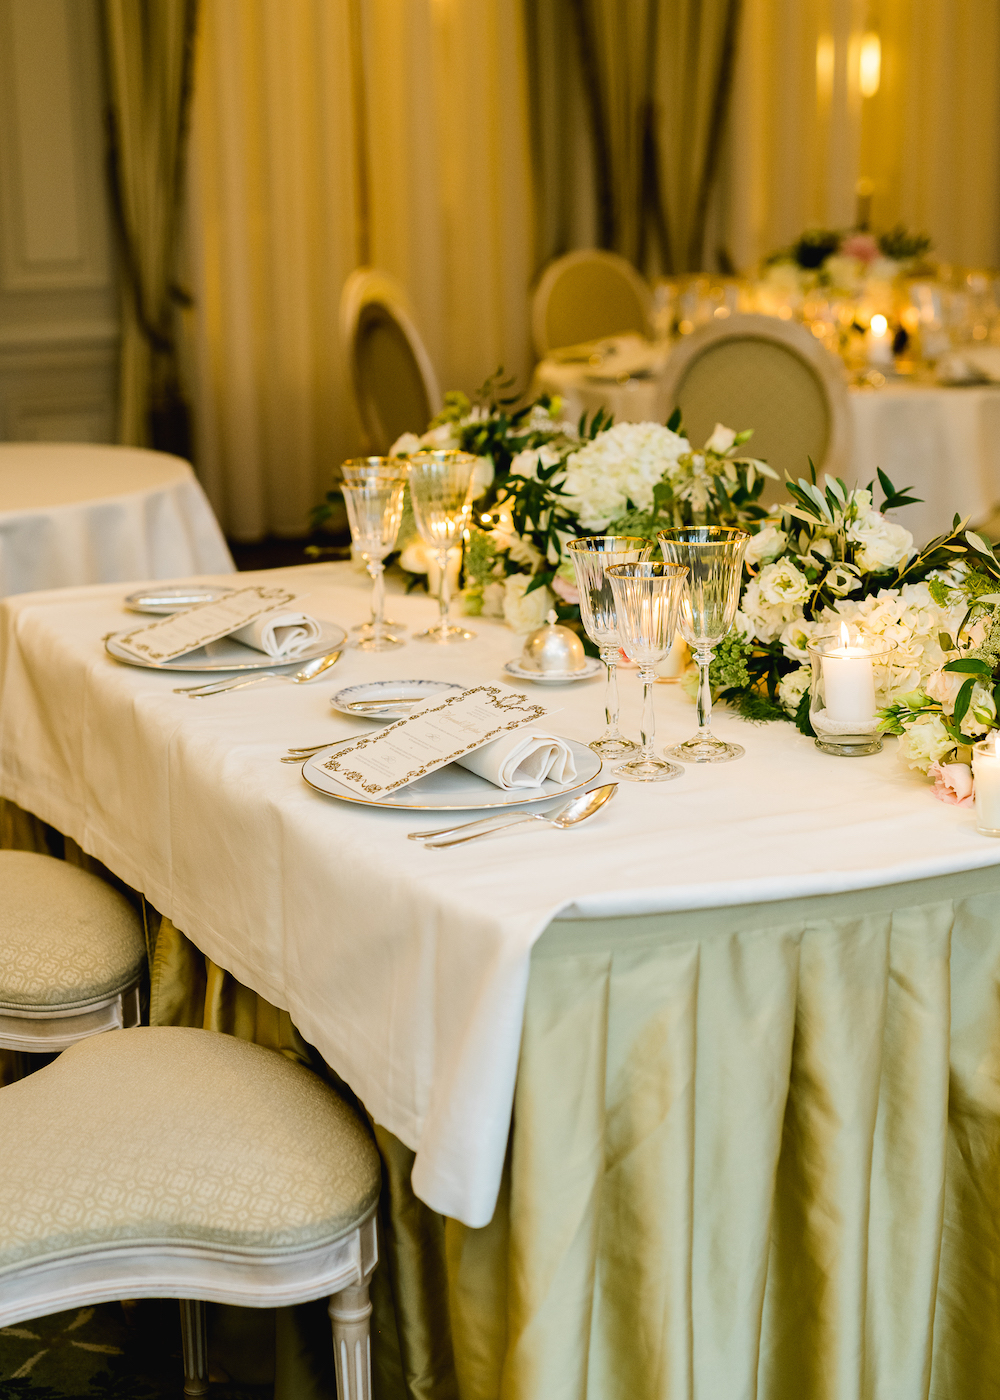 Sweetheart table at the Ritz Paris